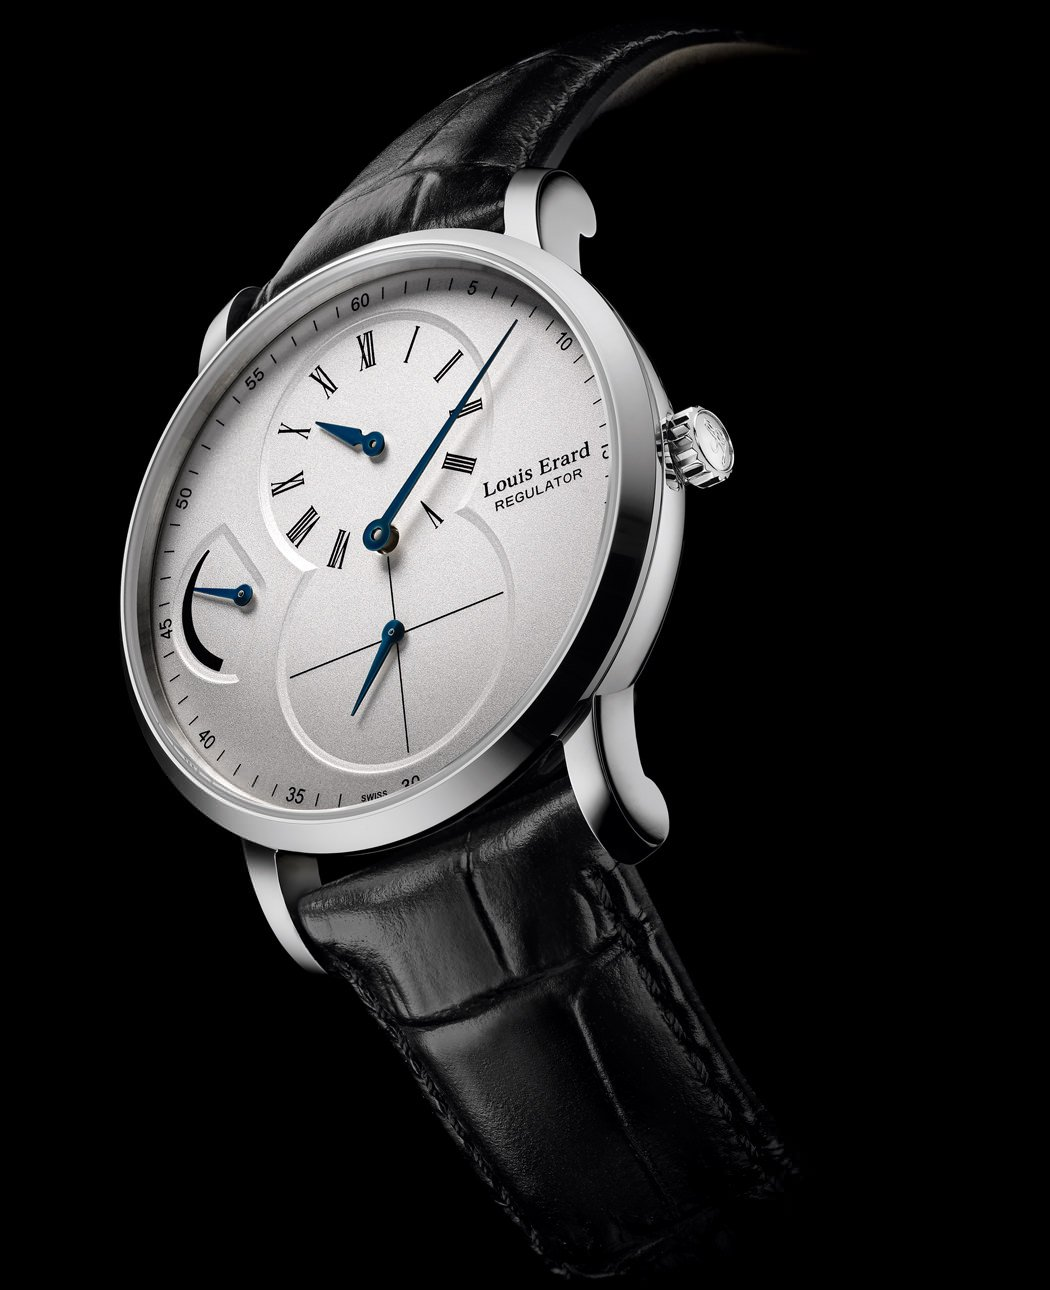 EXCELLENCE REGULATEUR RESERVE DE MARCHE de Louis Erard